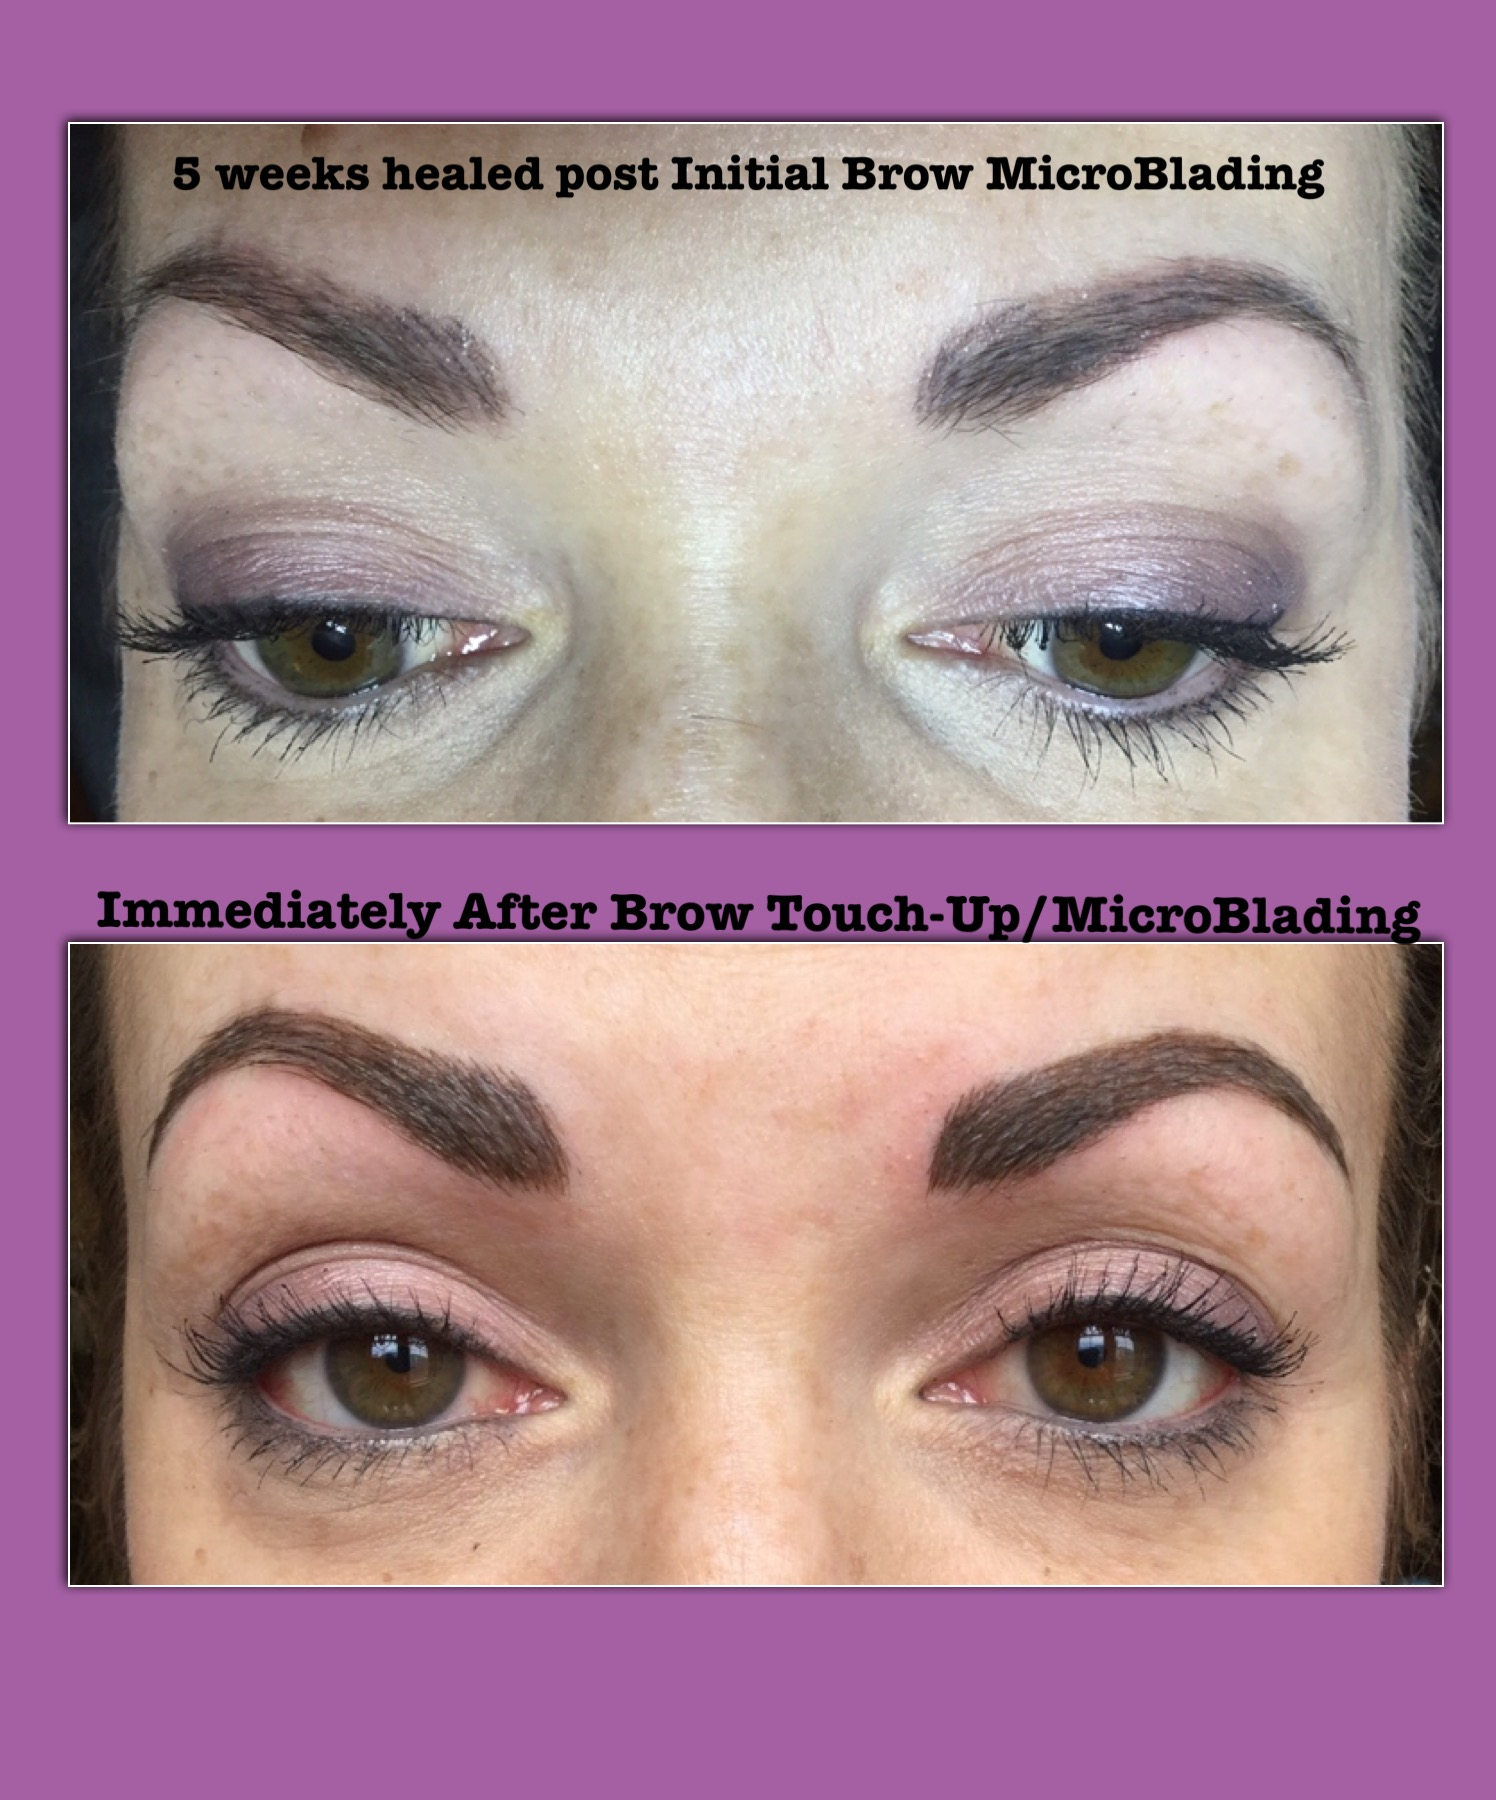 Microblading Omaha : microblading, omaha, Healed, Brows, Initial, Micro-Blading, Final, Micro-Blade, Touch-Up(*), Enduring, Esthetics